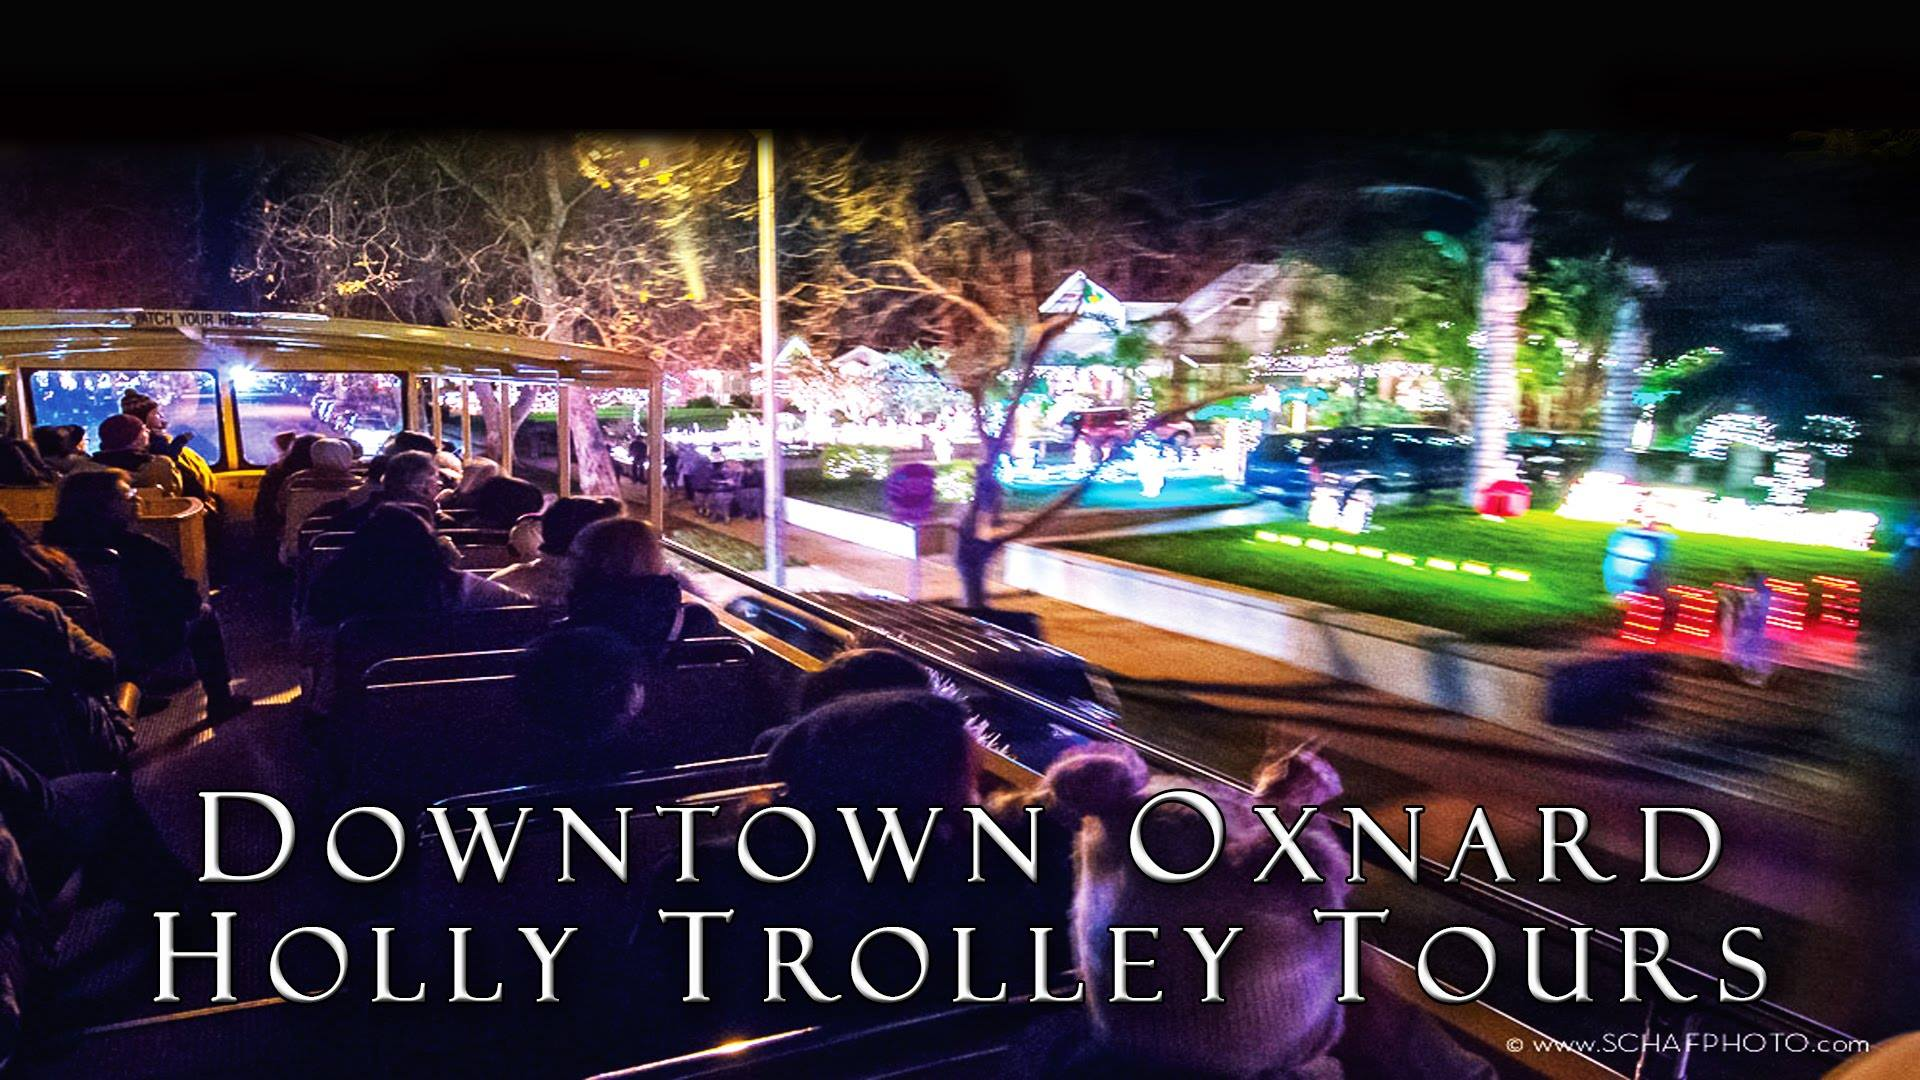 Downtown Oxnard Holly Trolley Tours